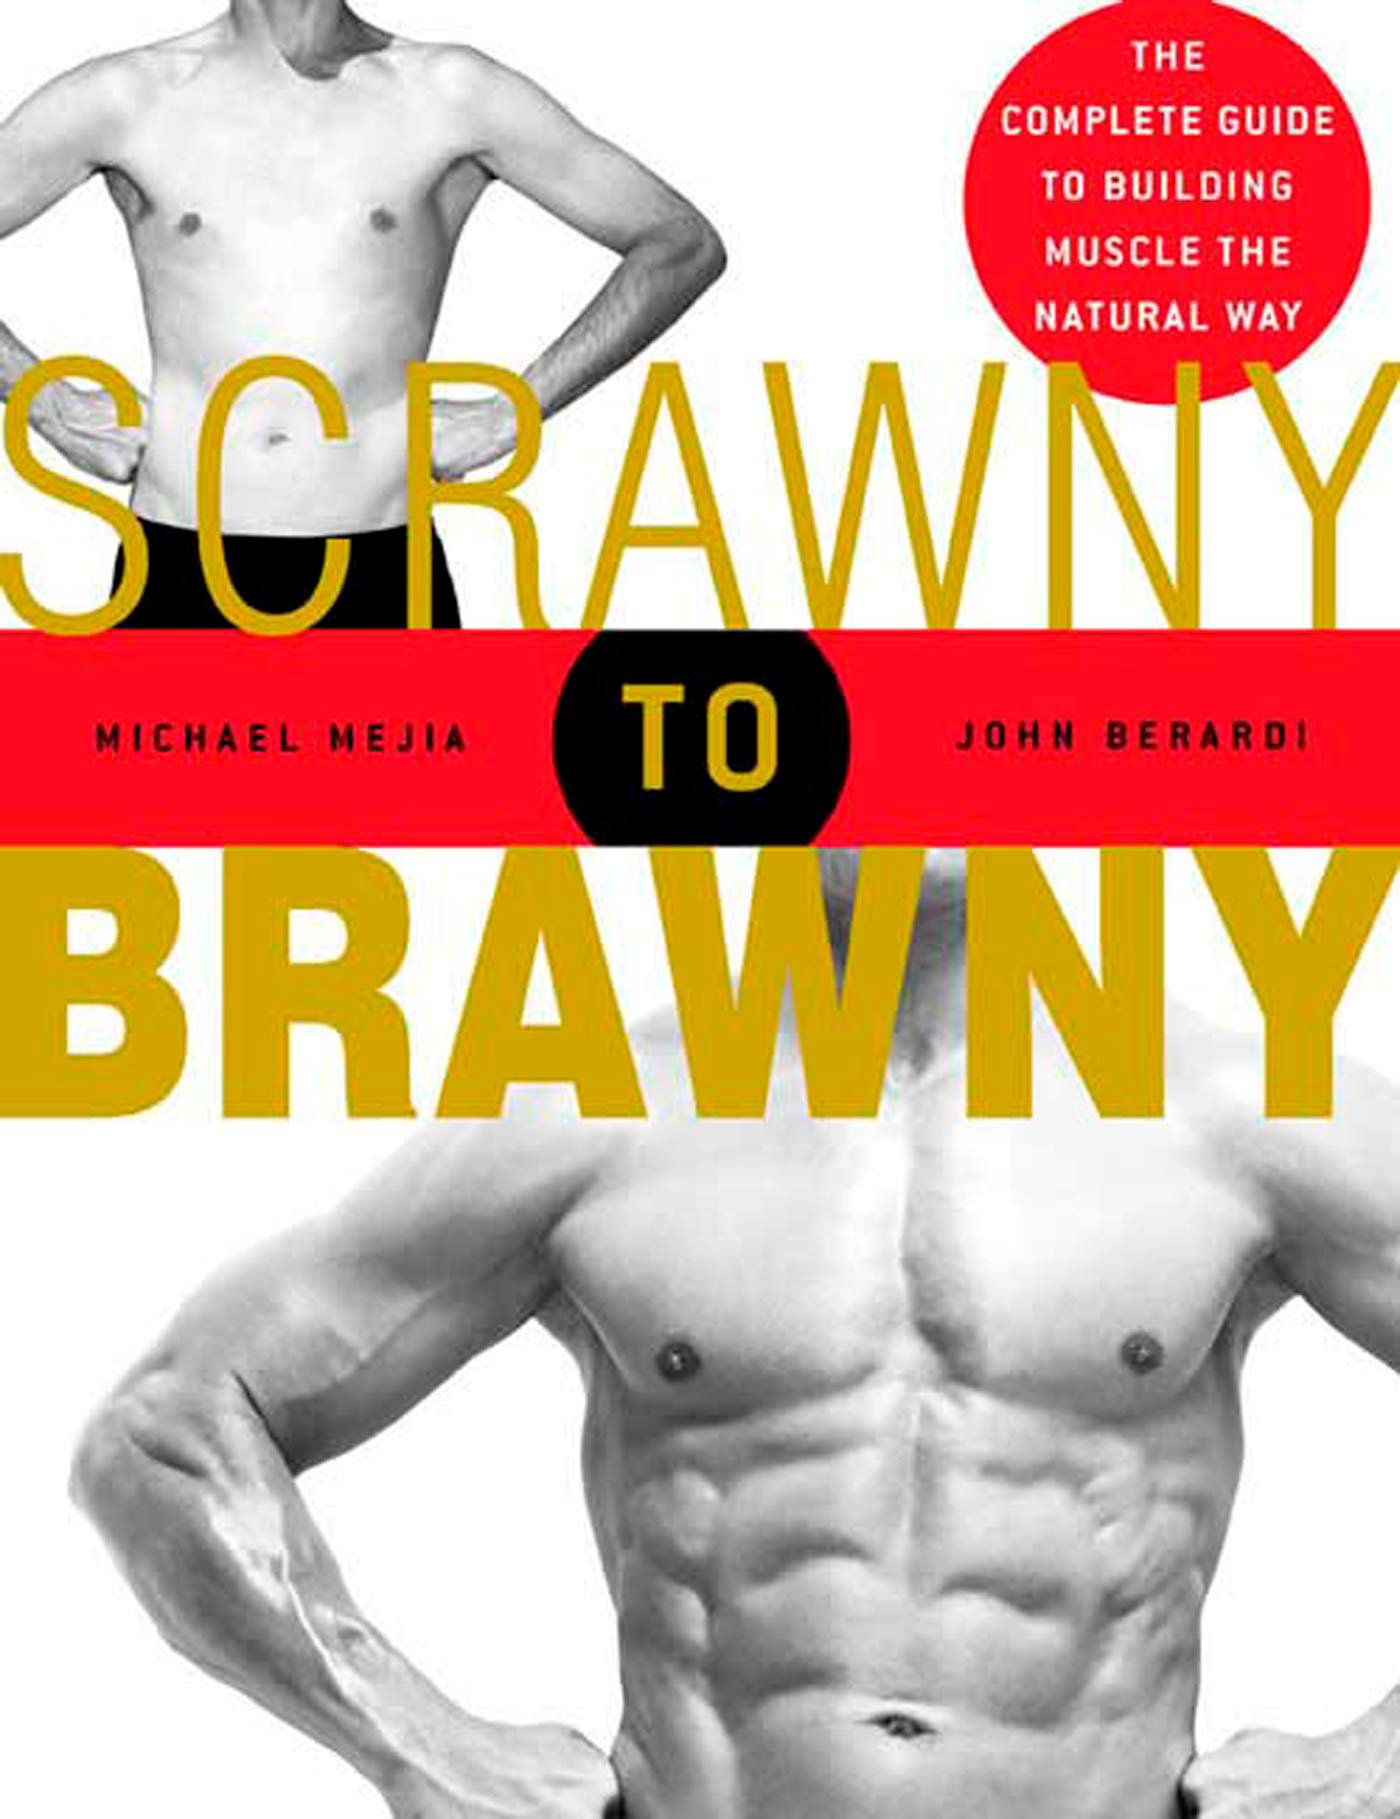 Scrawny to Brawny: The Complete Guide to Building Muscle the